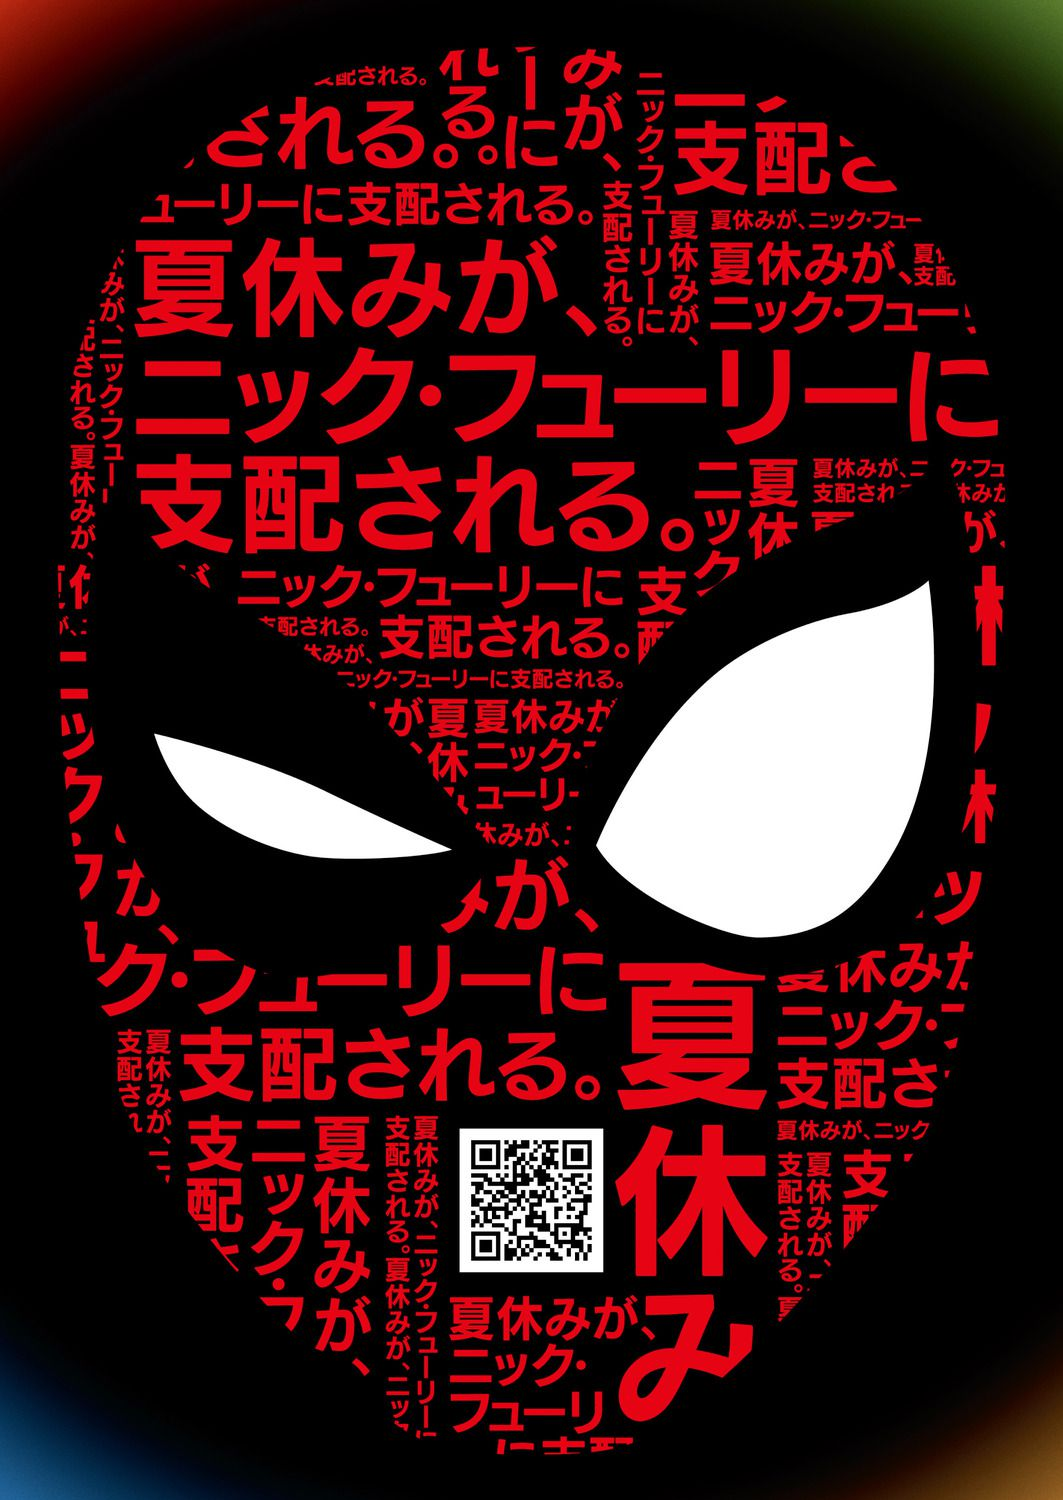 Spiderman far from Home (2019) poster written mask